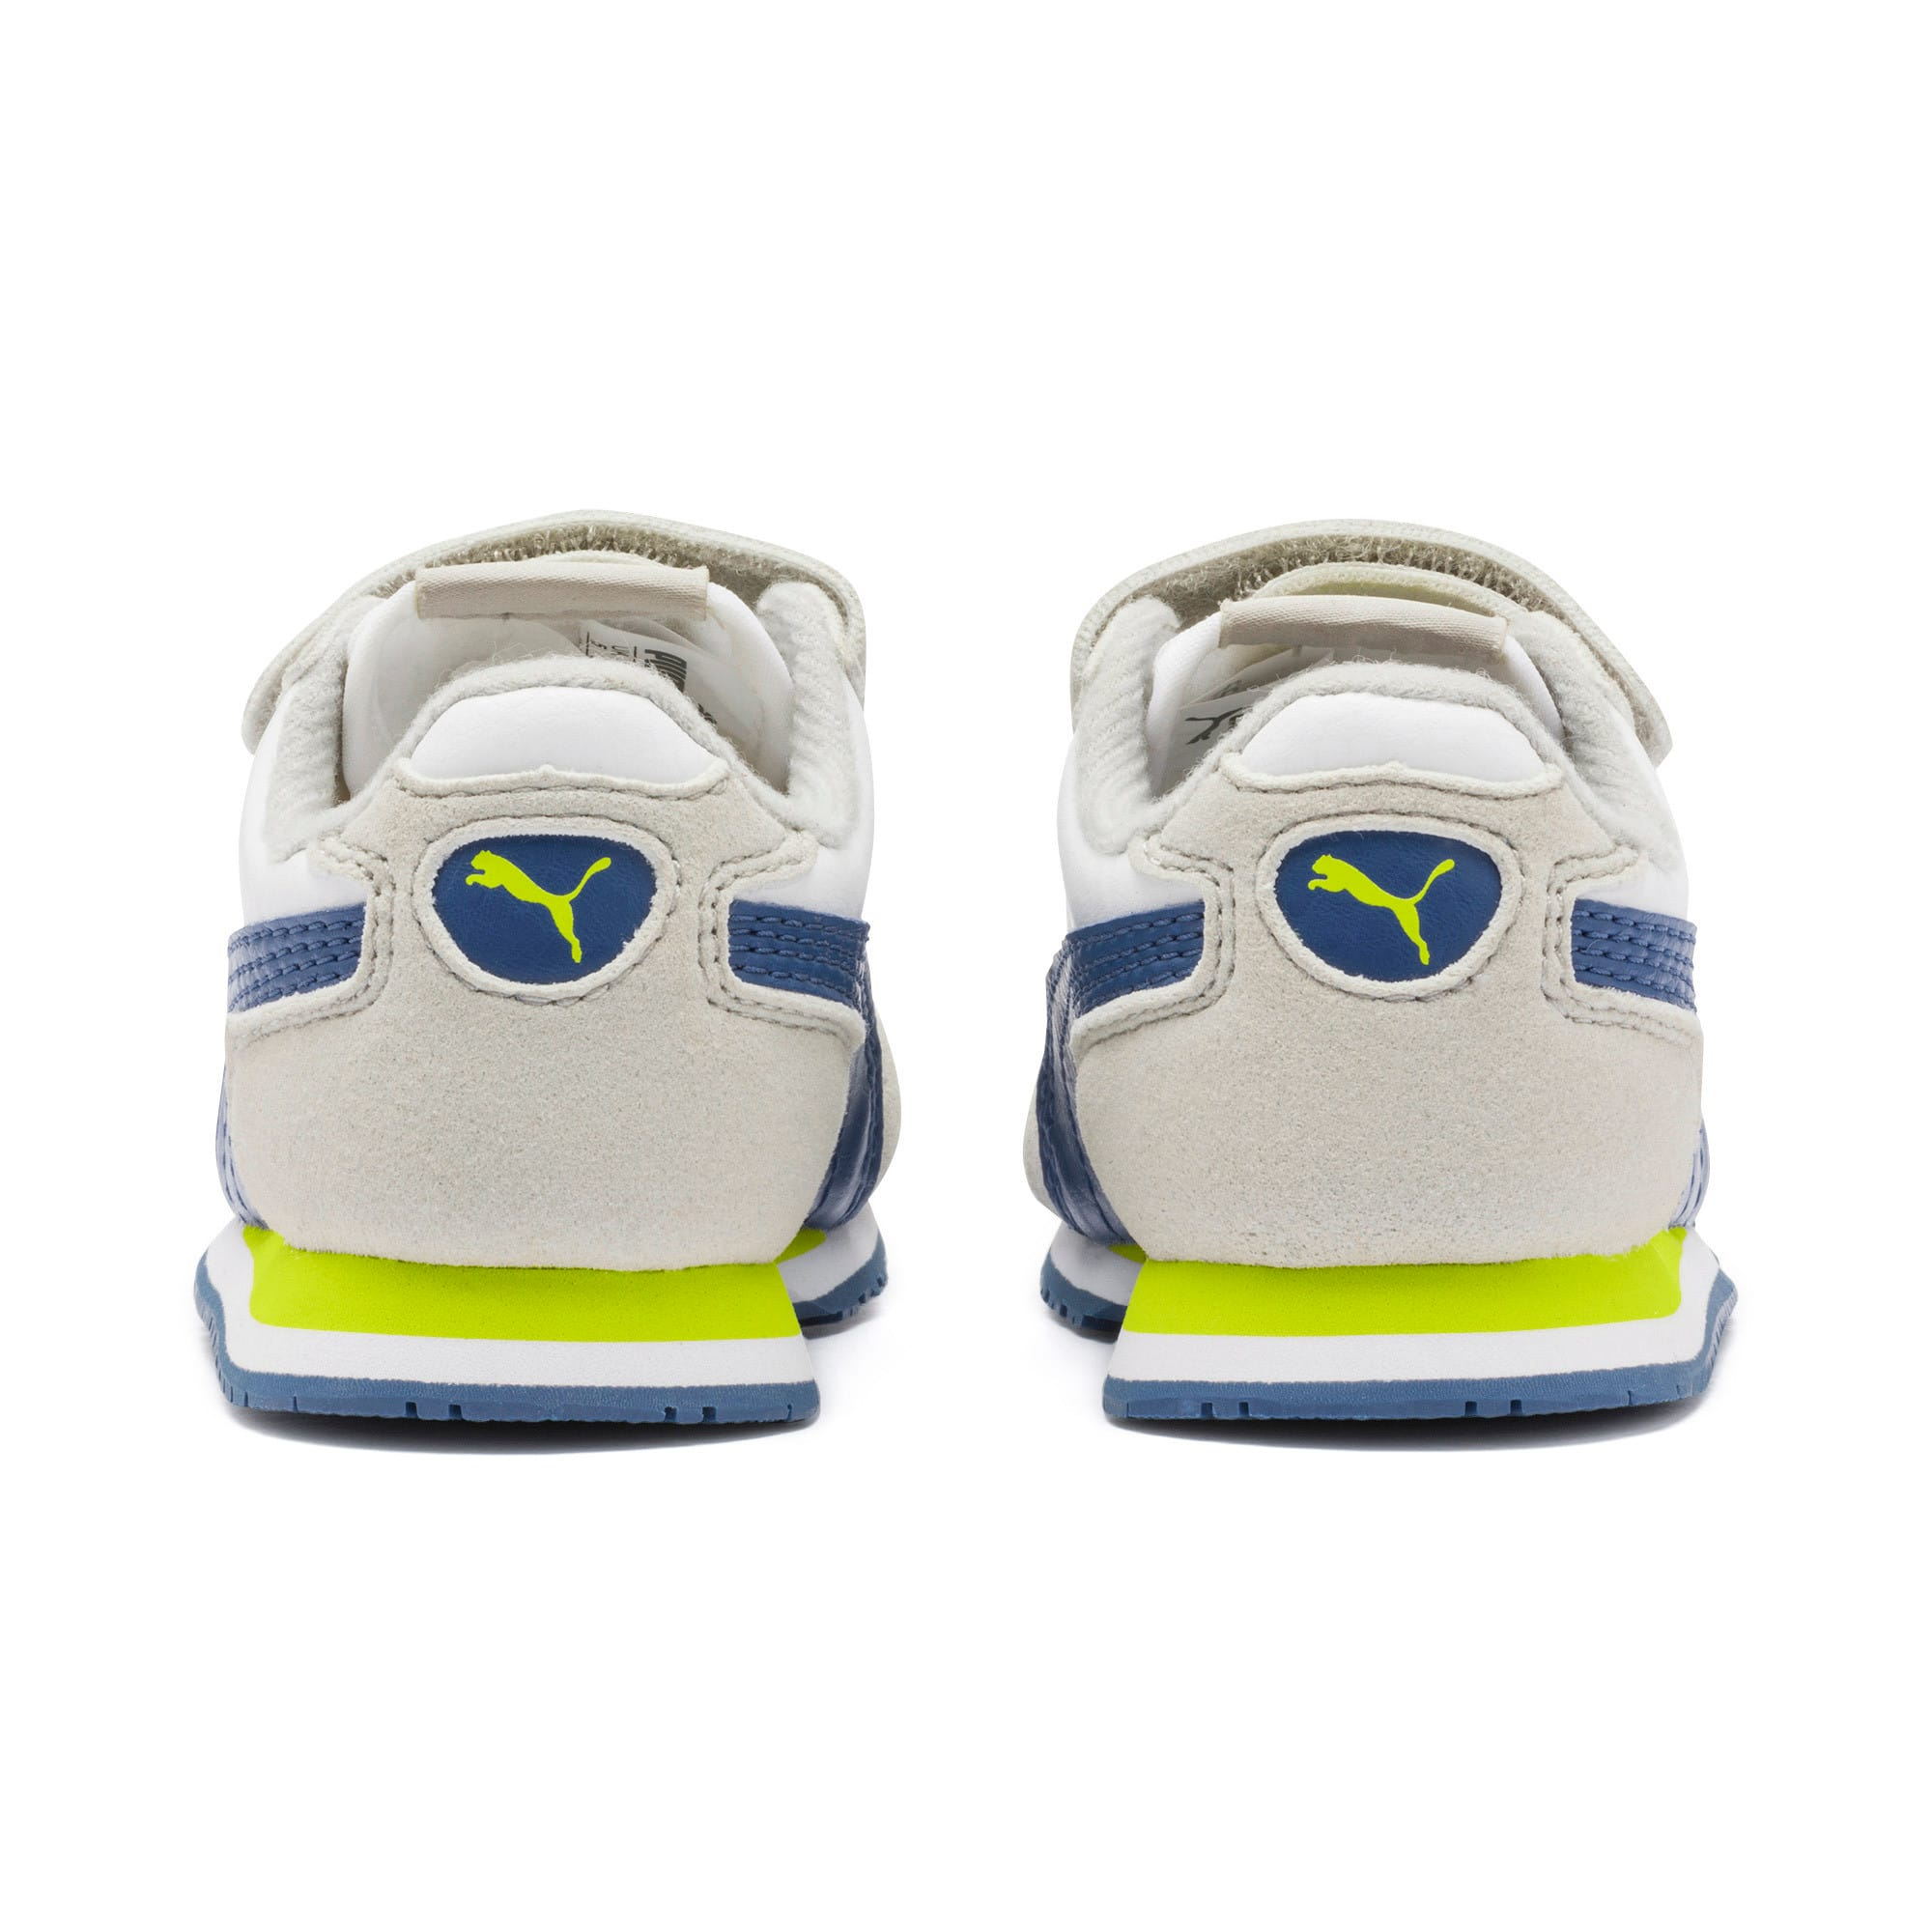 Thumbnail 3 of Cabana Racer SL Toddler Shoes, Puma White-Galaxy Blue, medium